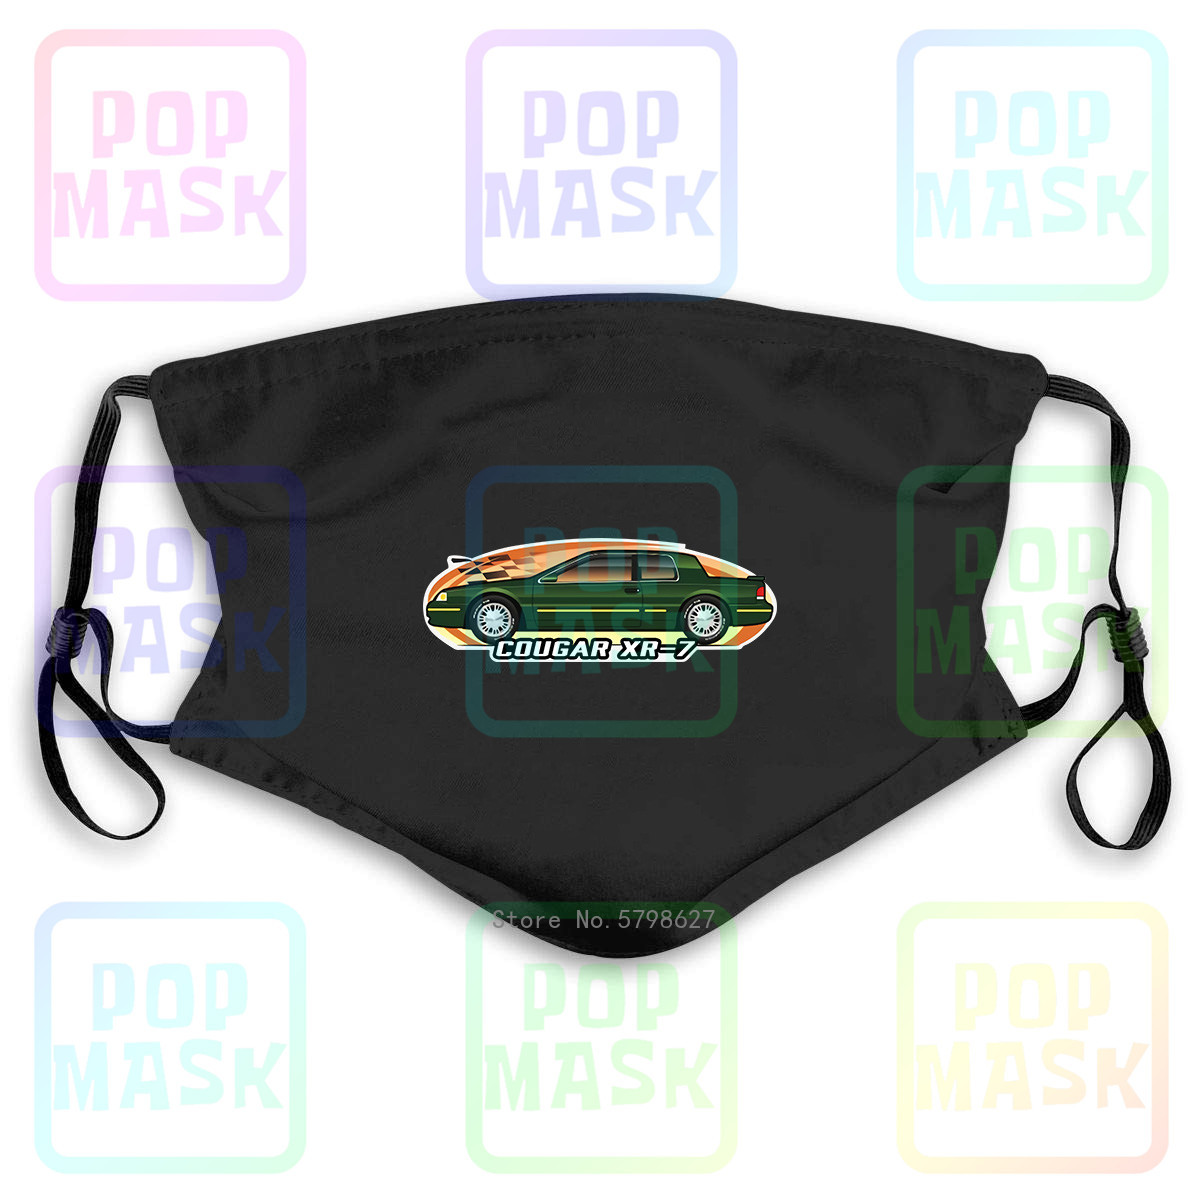 Car Art Cougar Xr-7 Xr7 1996 1997 Ls Not Affiliated With Mercury Washable Reusable Mask with 2Pcs PM2.5 Filters 5 Layers